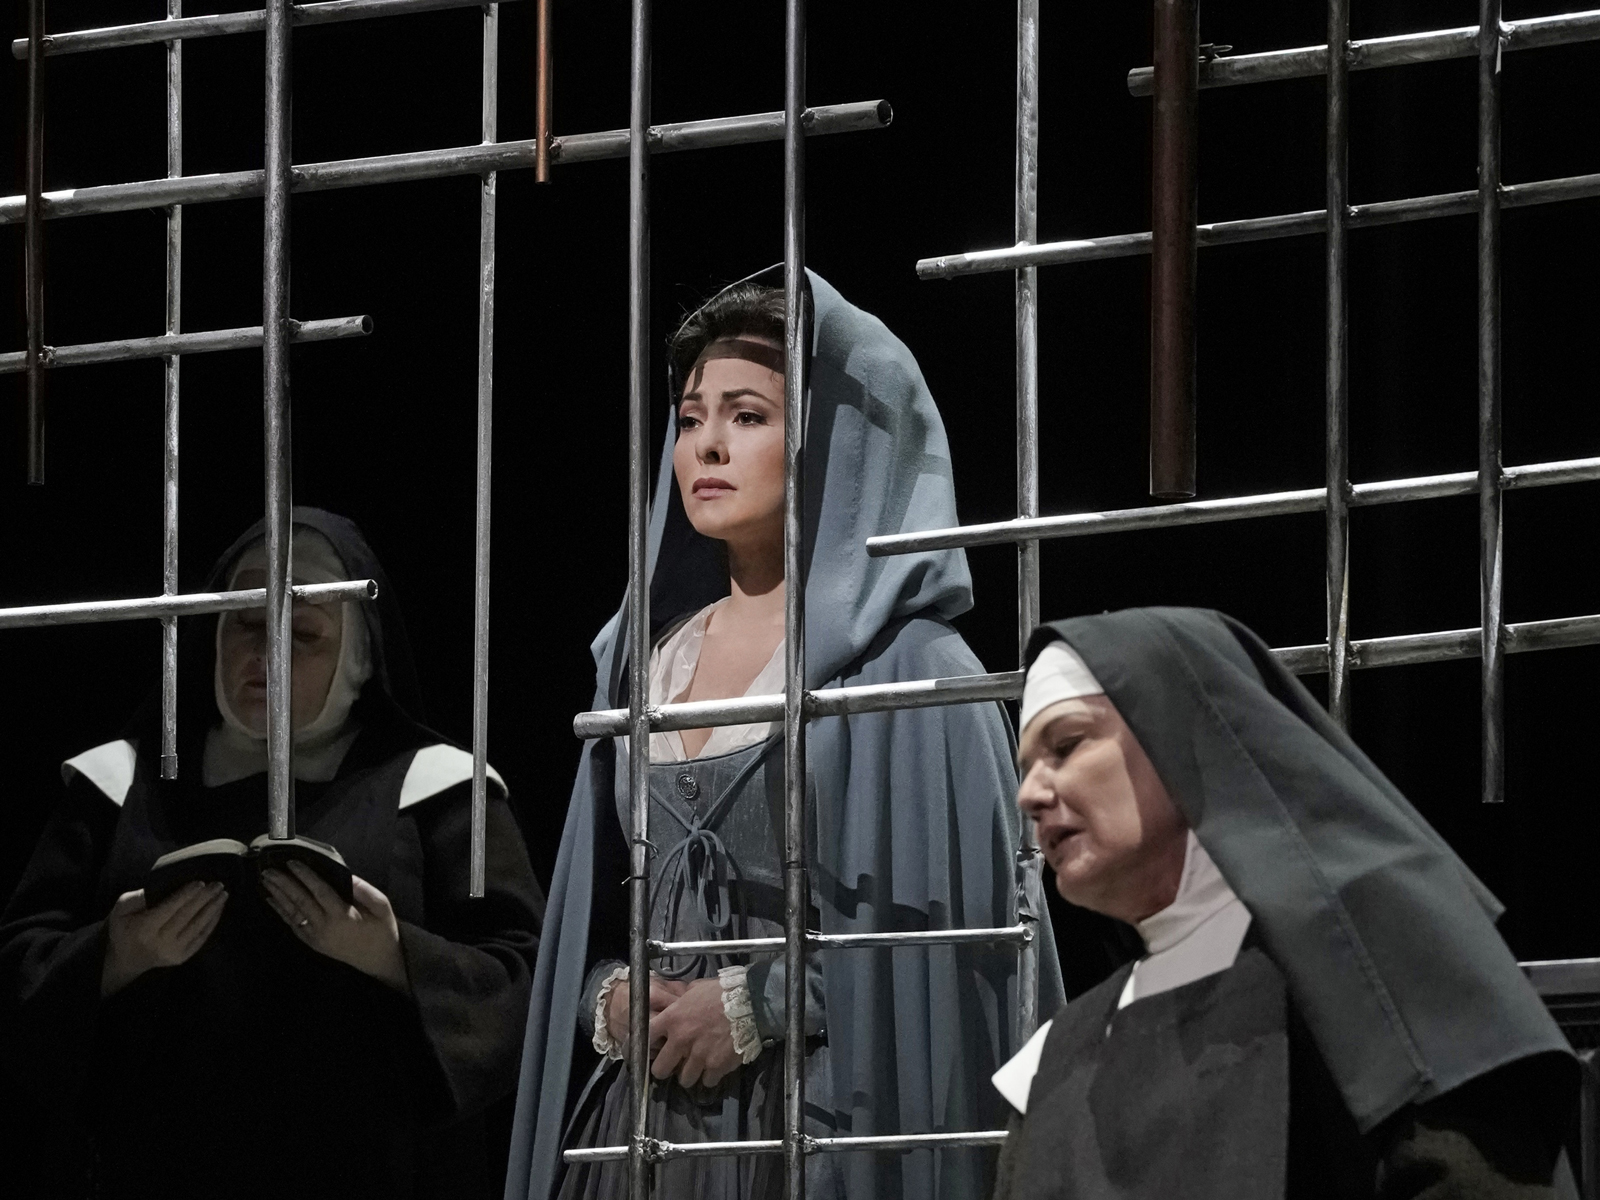 A scene from Dialogues des Carmélites